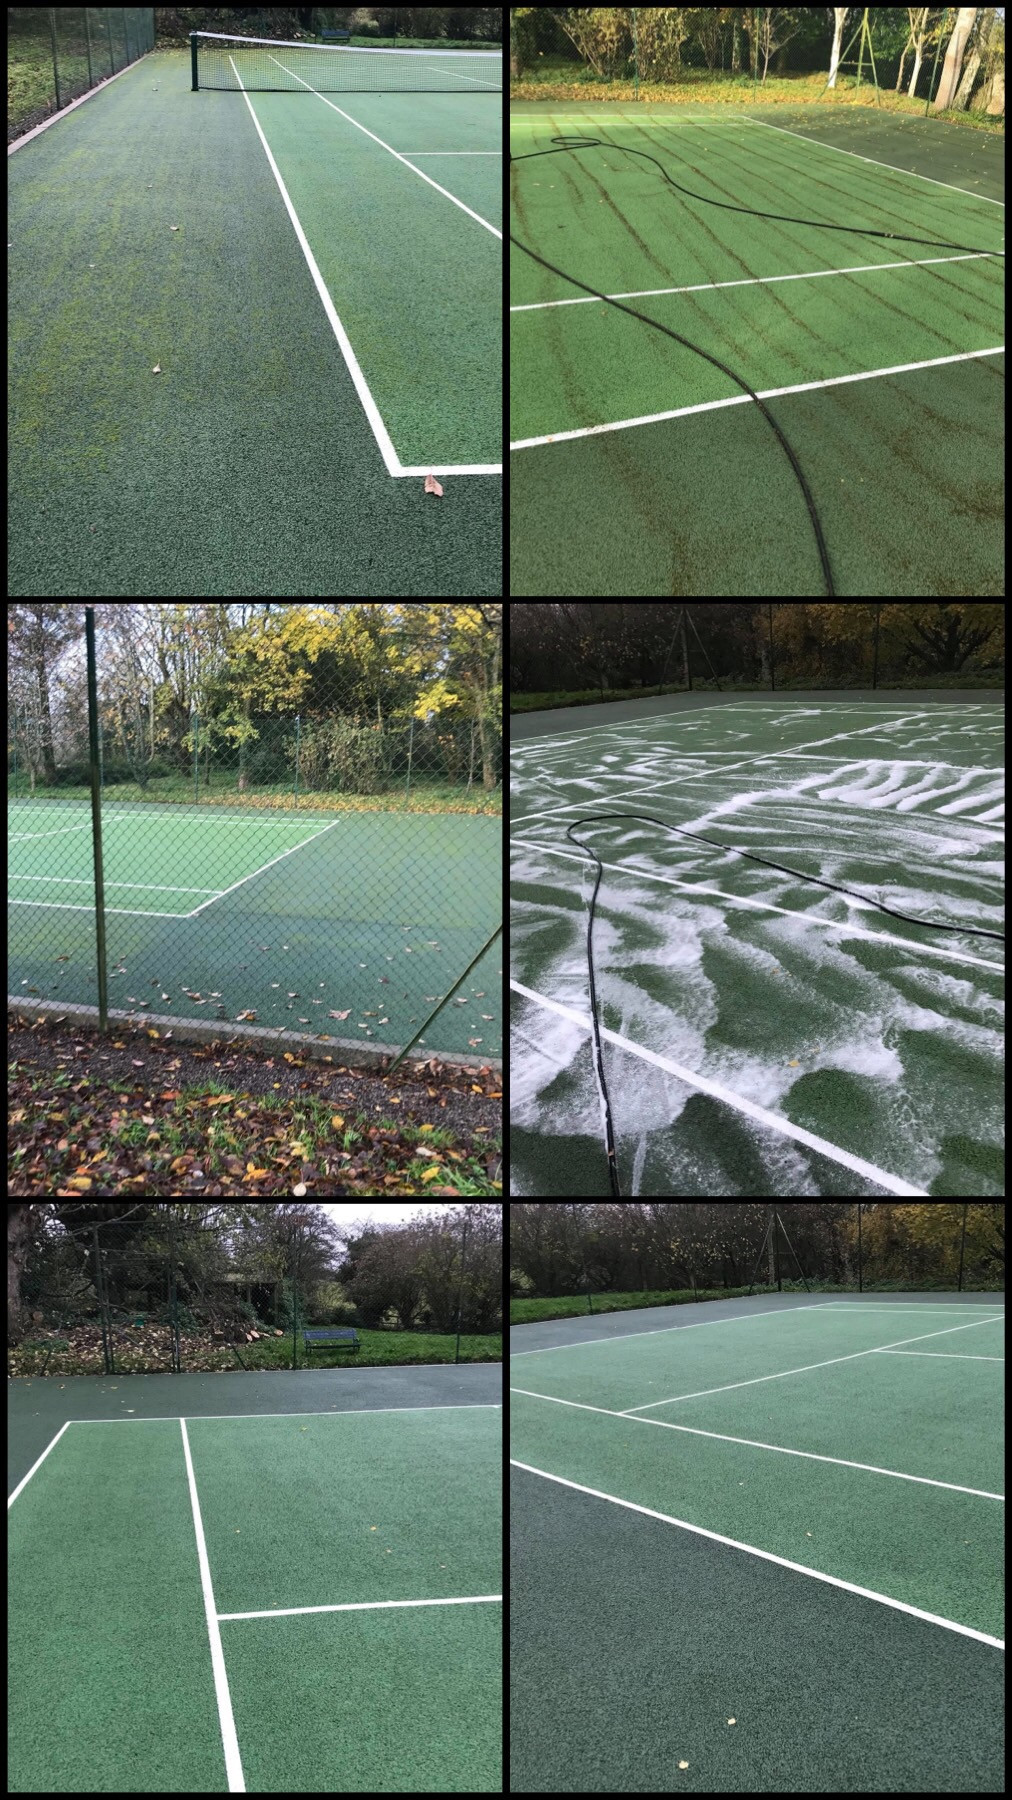 TARMAC DRIVEWAY CLEANING AND TREATING TARMAC MOSS REMOVAL TARMAC CLEANING BANBURY TARMAC CLEANING BRACKLEY TARMAC CLEANING OXFORD TENNIS COURT CLEANING